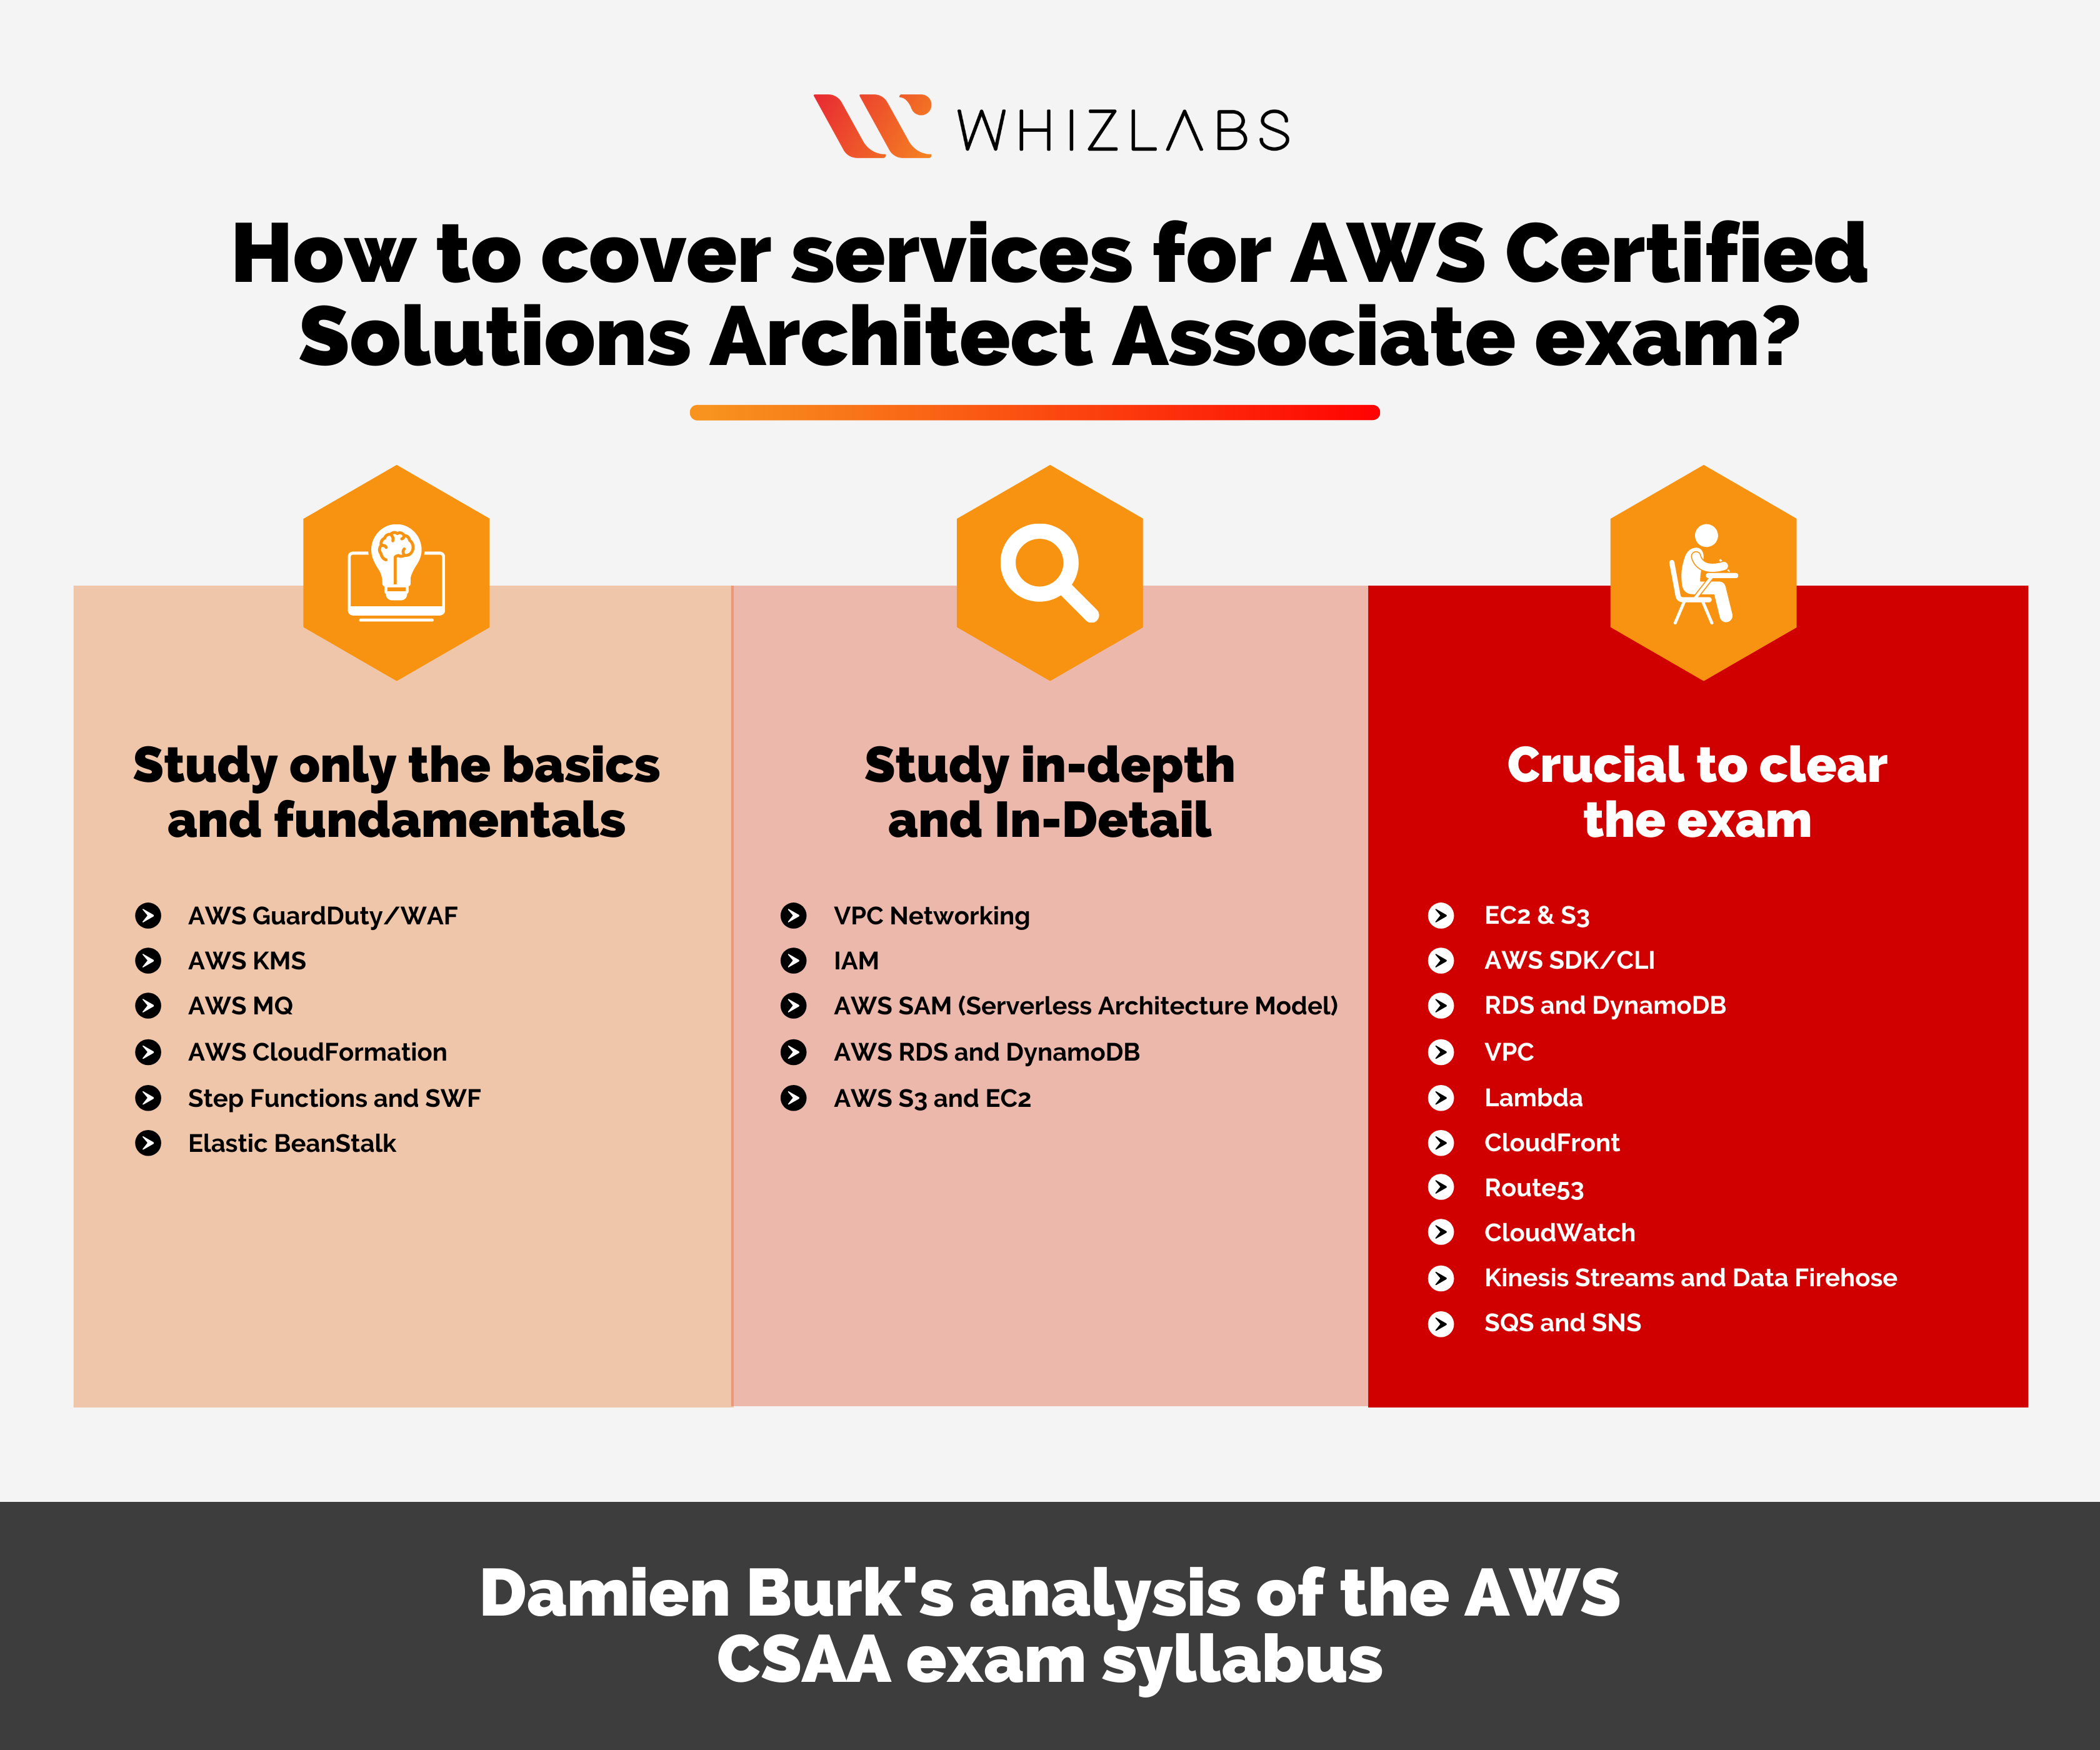 How to cover services for AWS Certified Solutions Architect Associate exam